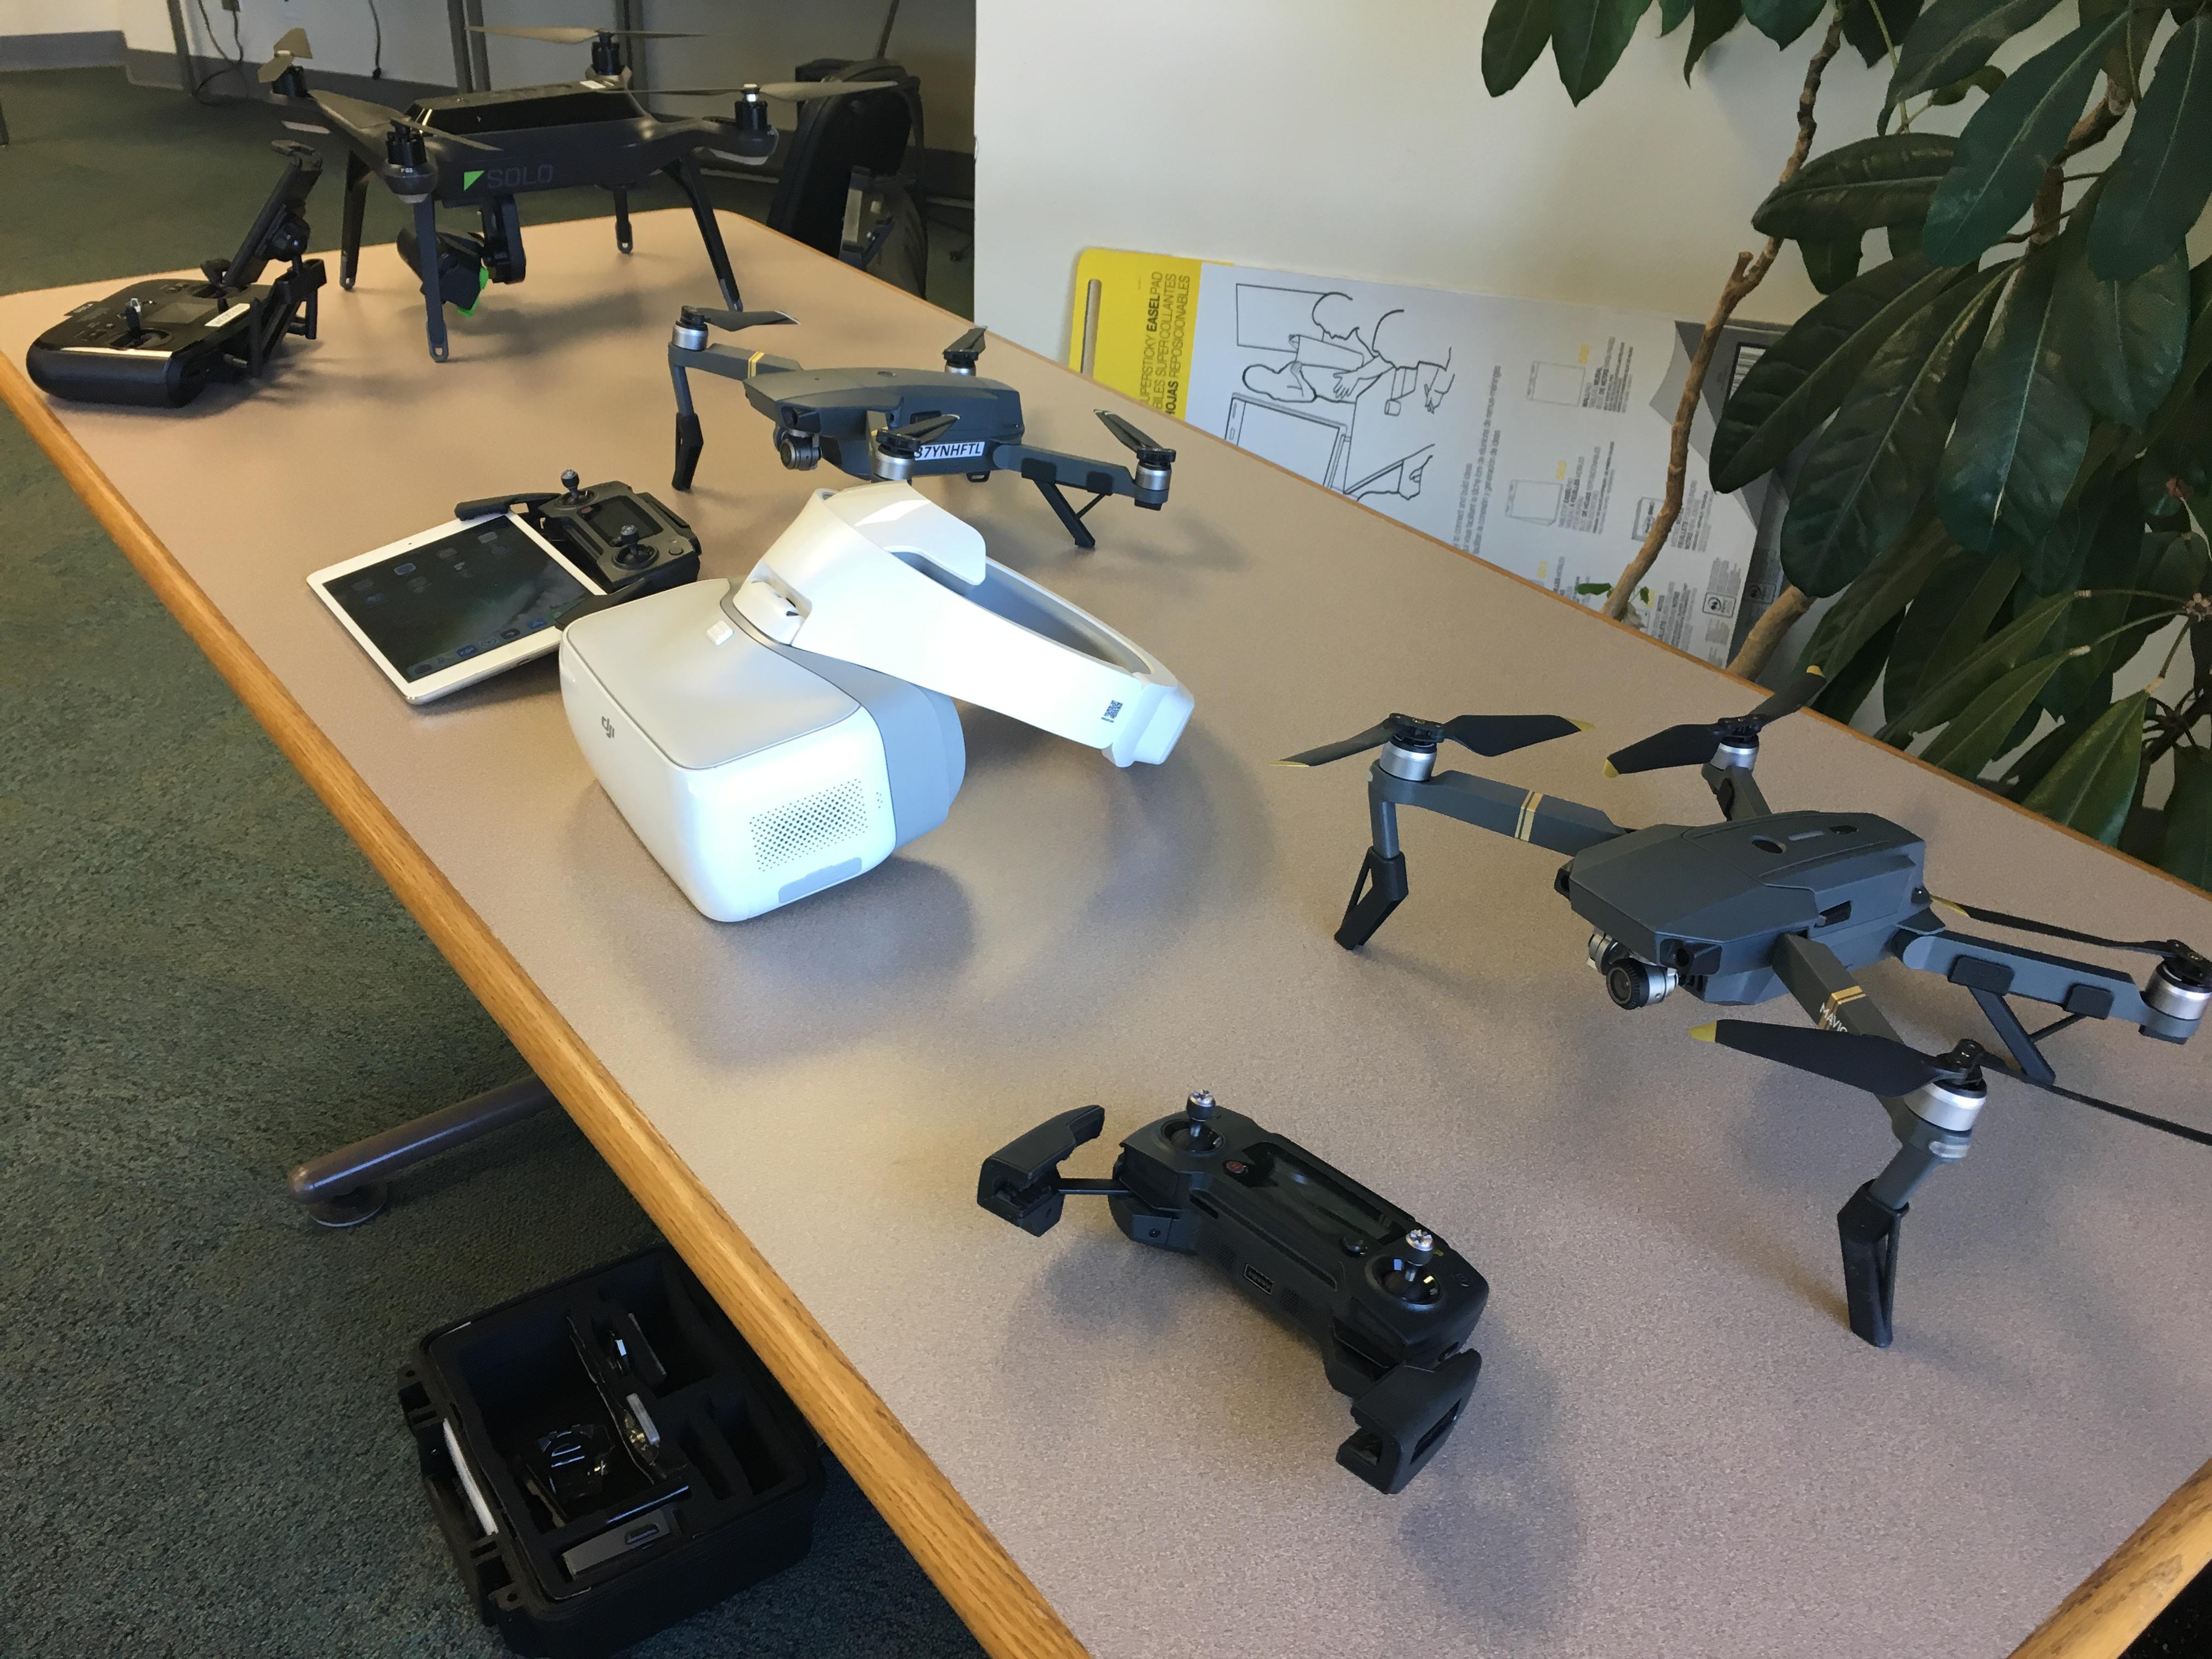 Table top display of five different drone technologies.